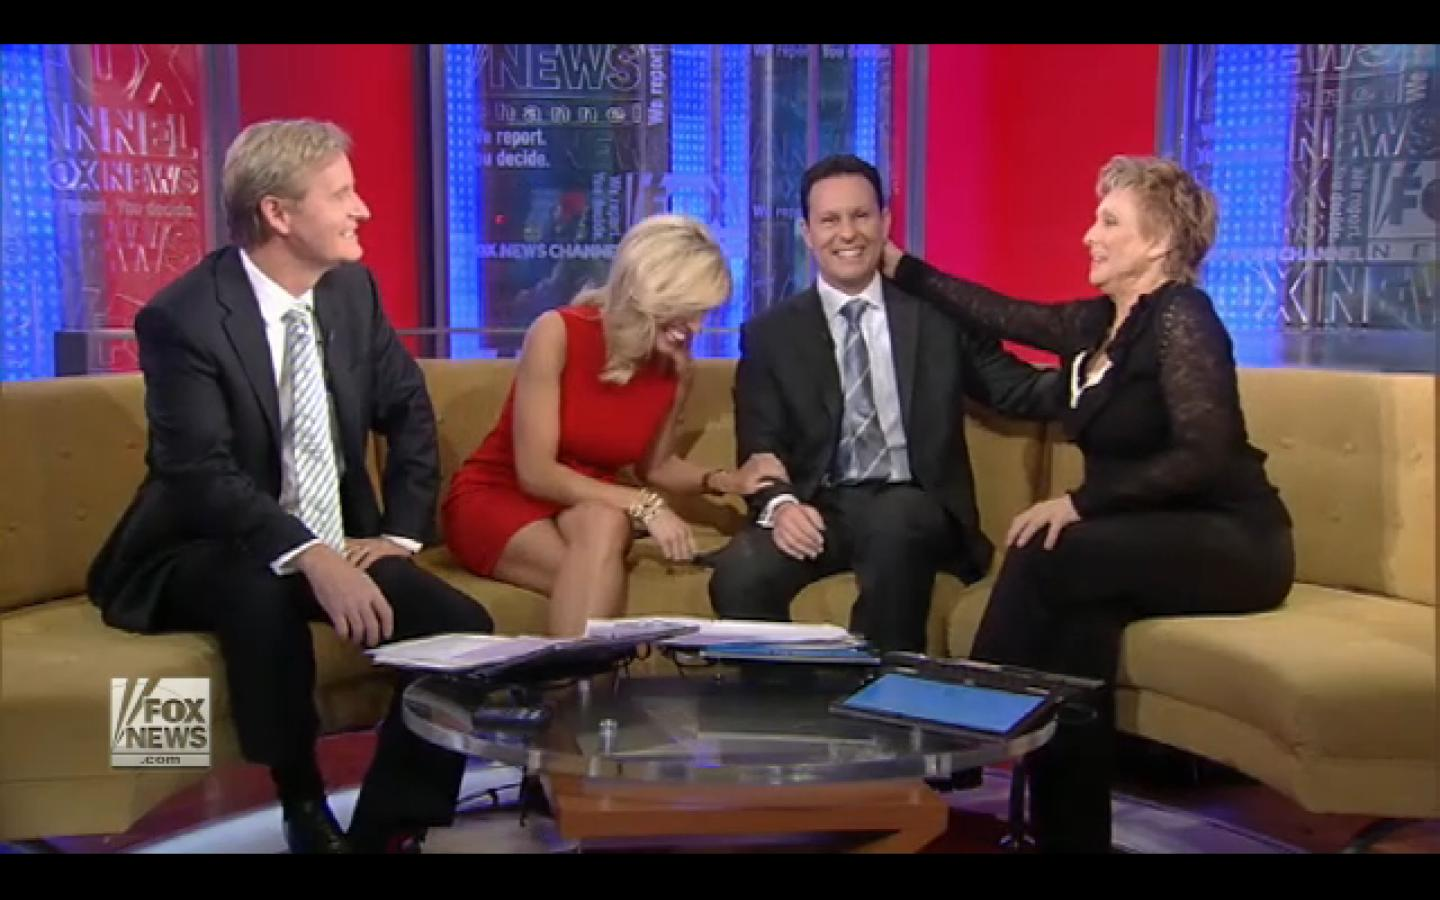 Week of nov british morning show and fox news fox and friends caps